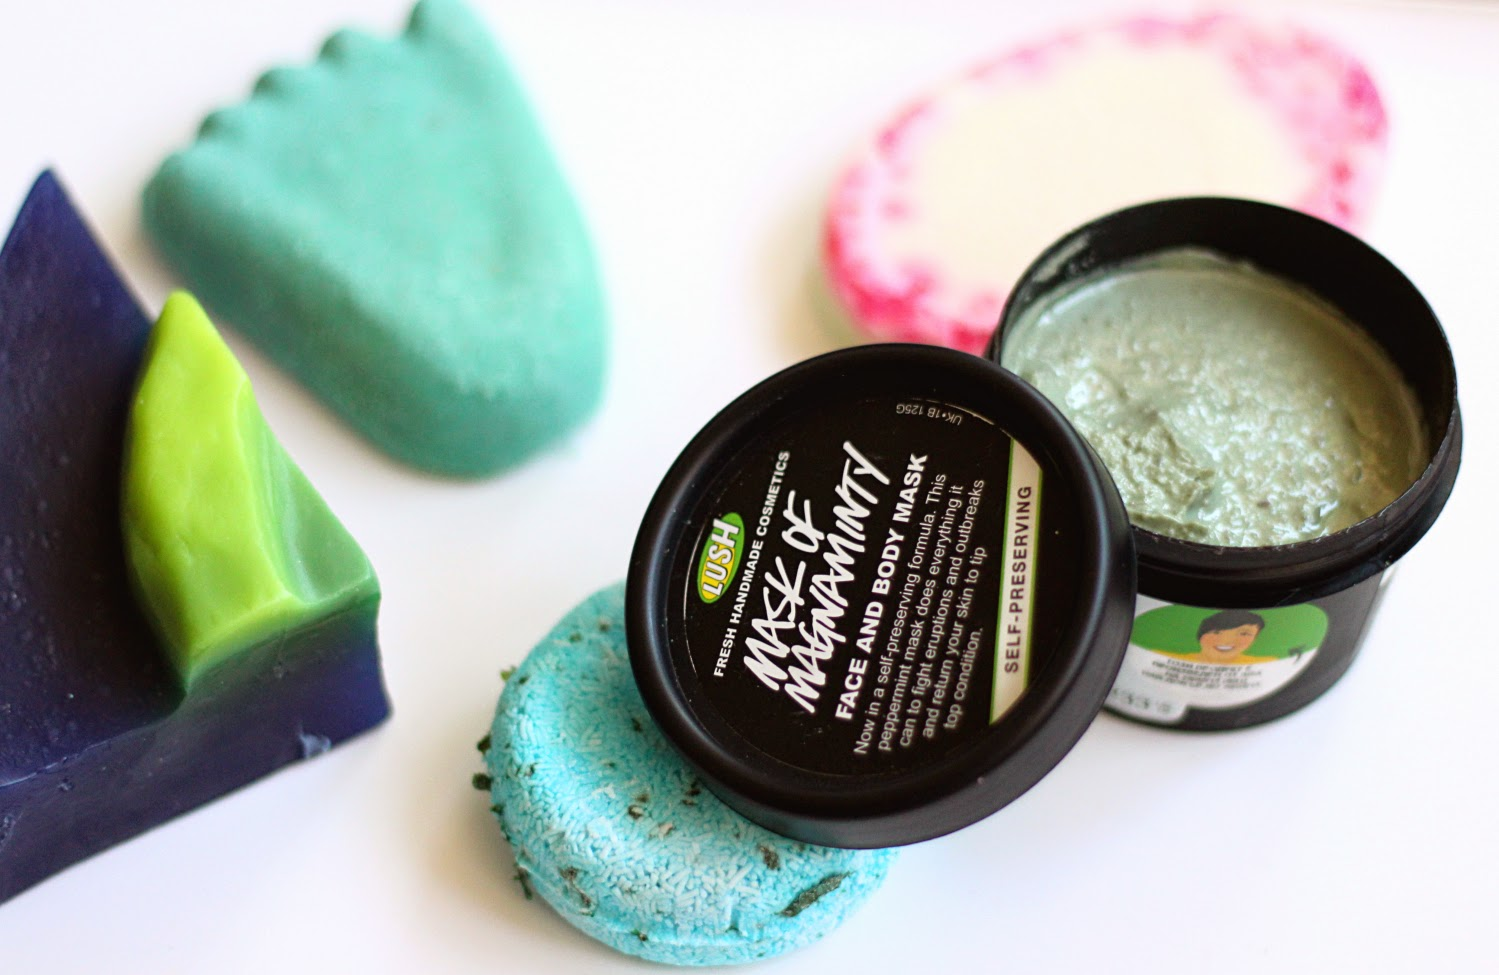 lush cosmetics product review by bulgarian beauty blogger quite a looker blog www.quitealooker.com